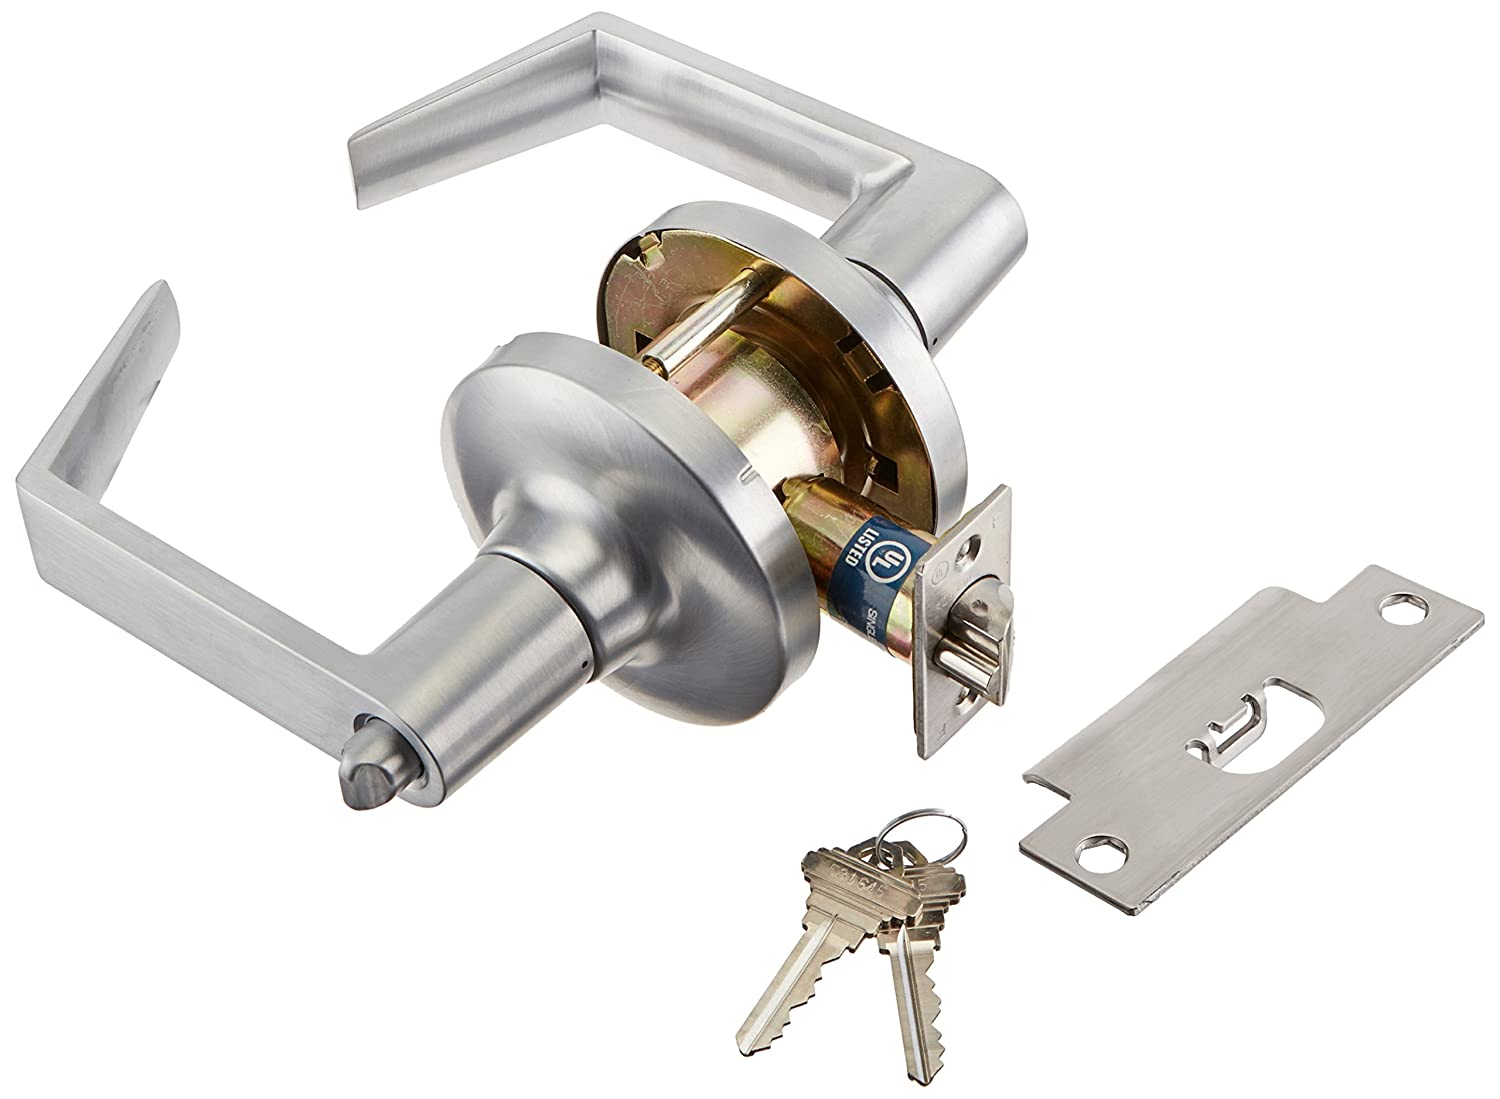 Schlage Commercial entry lock